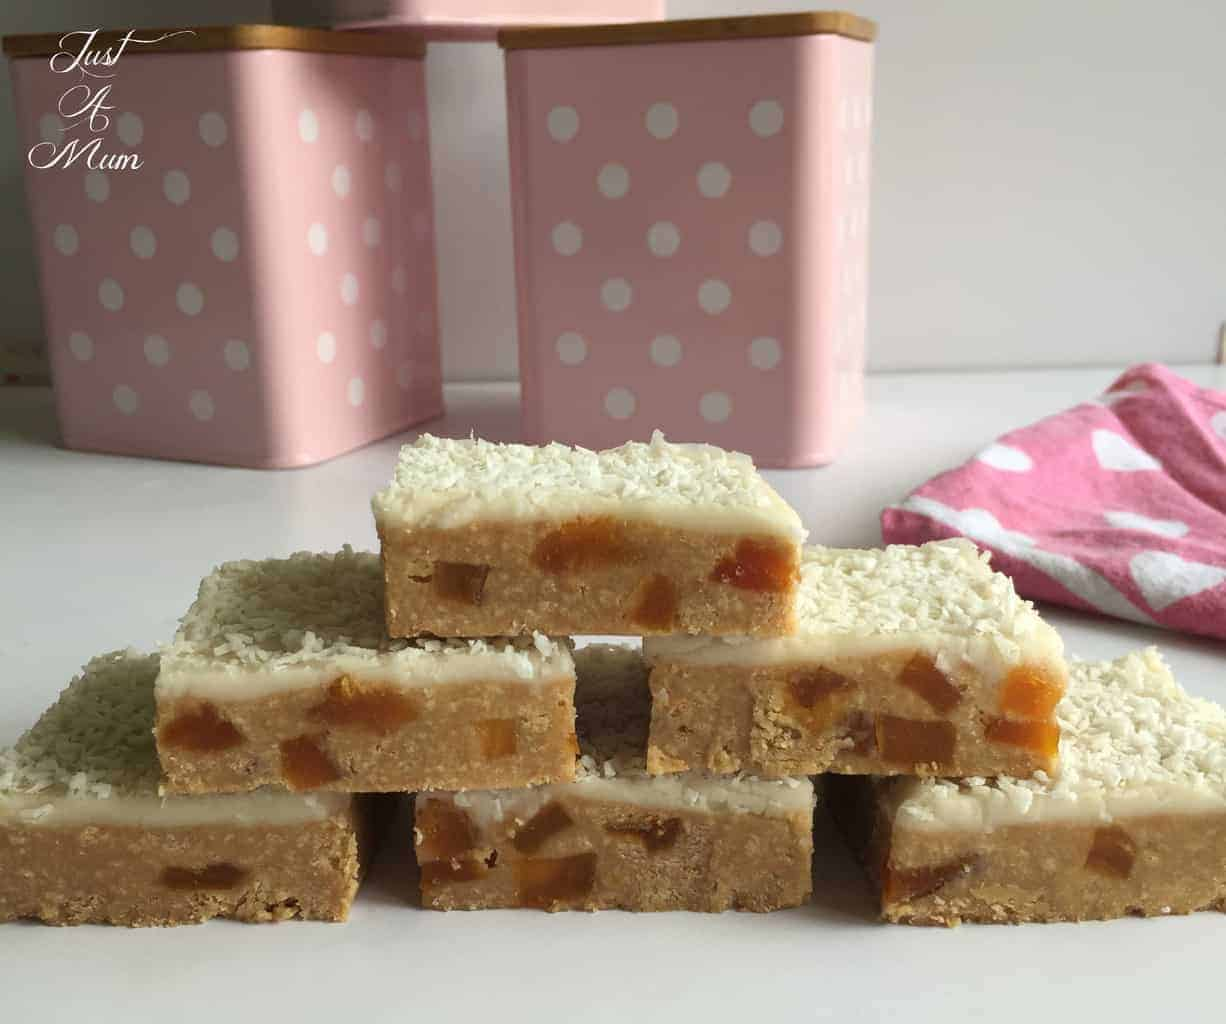 Just A Mum's Apricot Slice